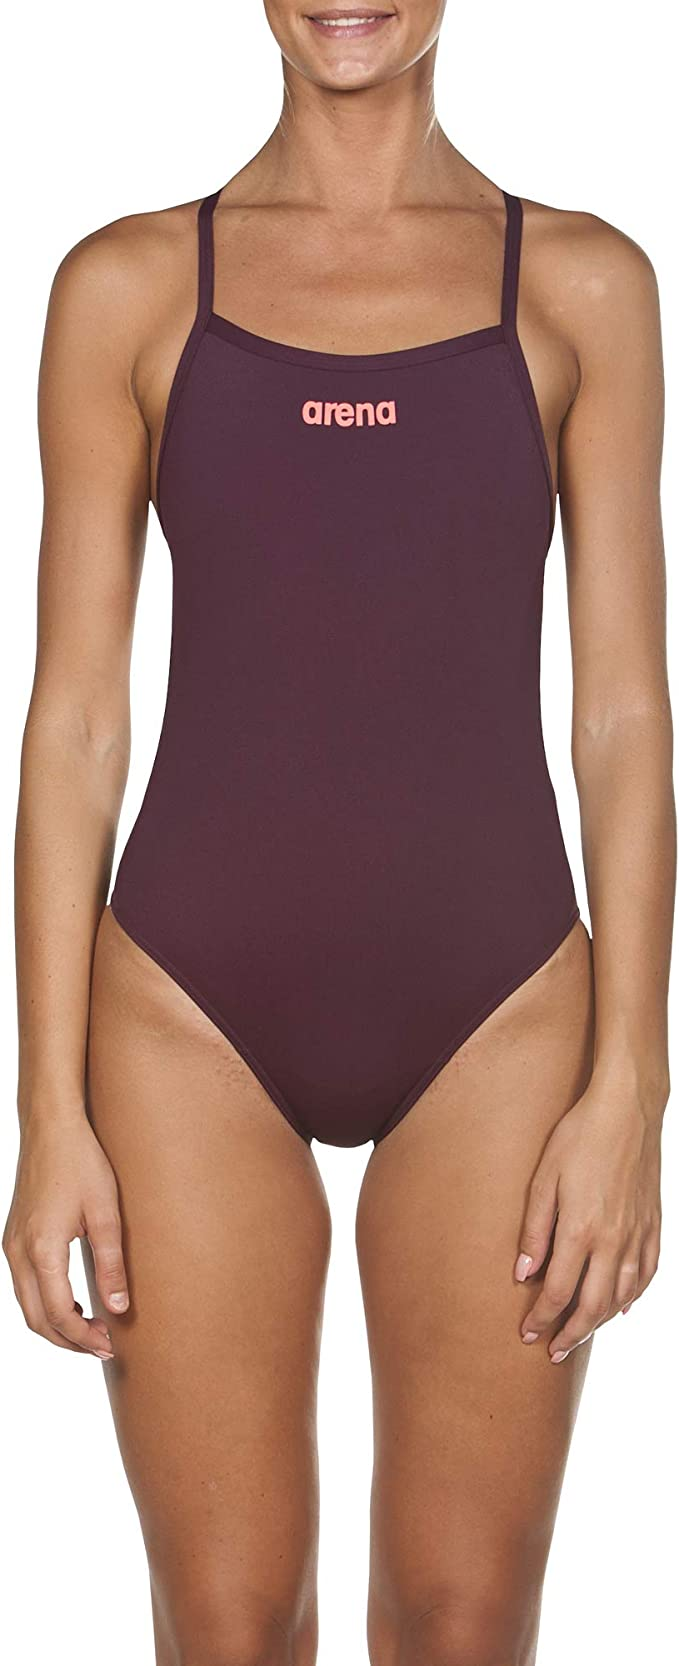 ARENA Woman Solid Swim High Tech One Piece 2A241 Red Wine//Shinny Pink